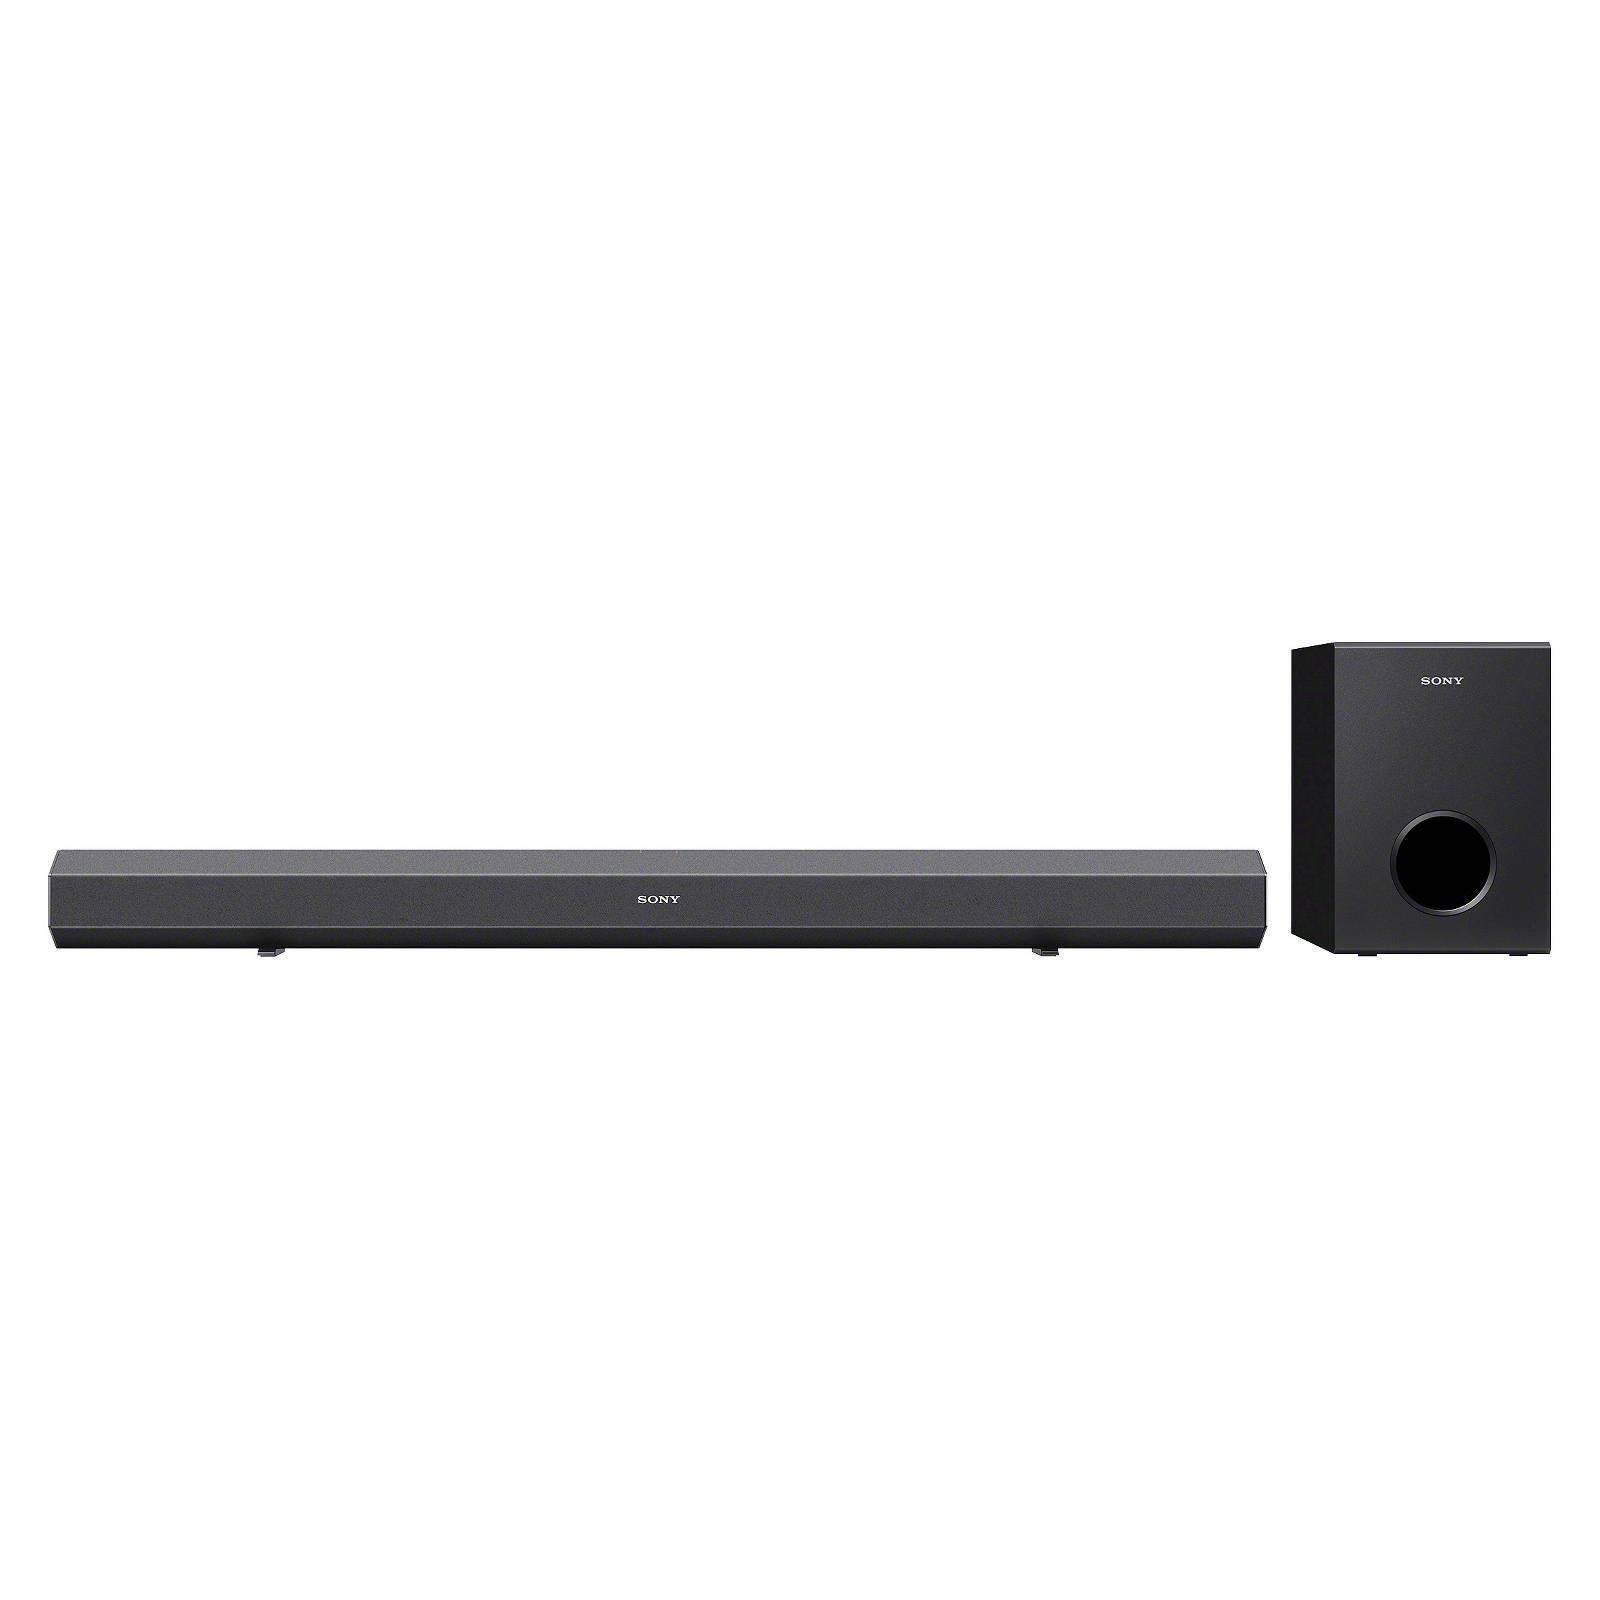 Project 116 Subwoofer Amp Sony Htct80 Home Theater Bluetooth Speaker System Ebay